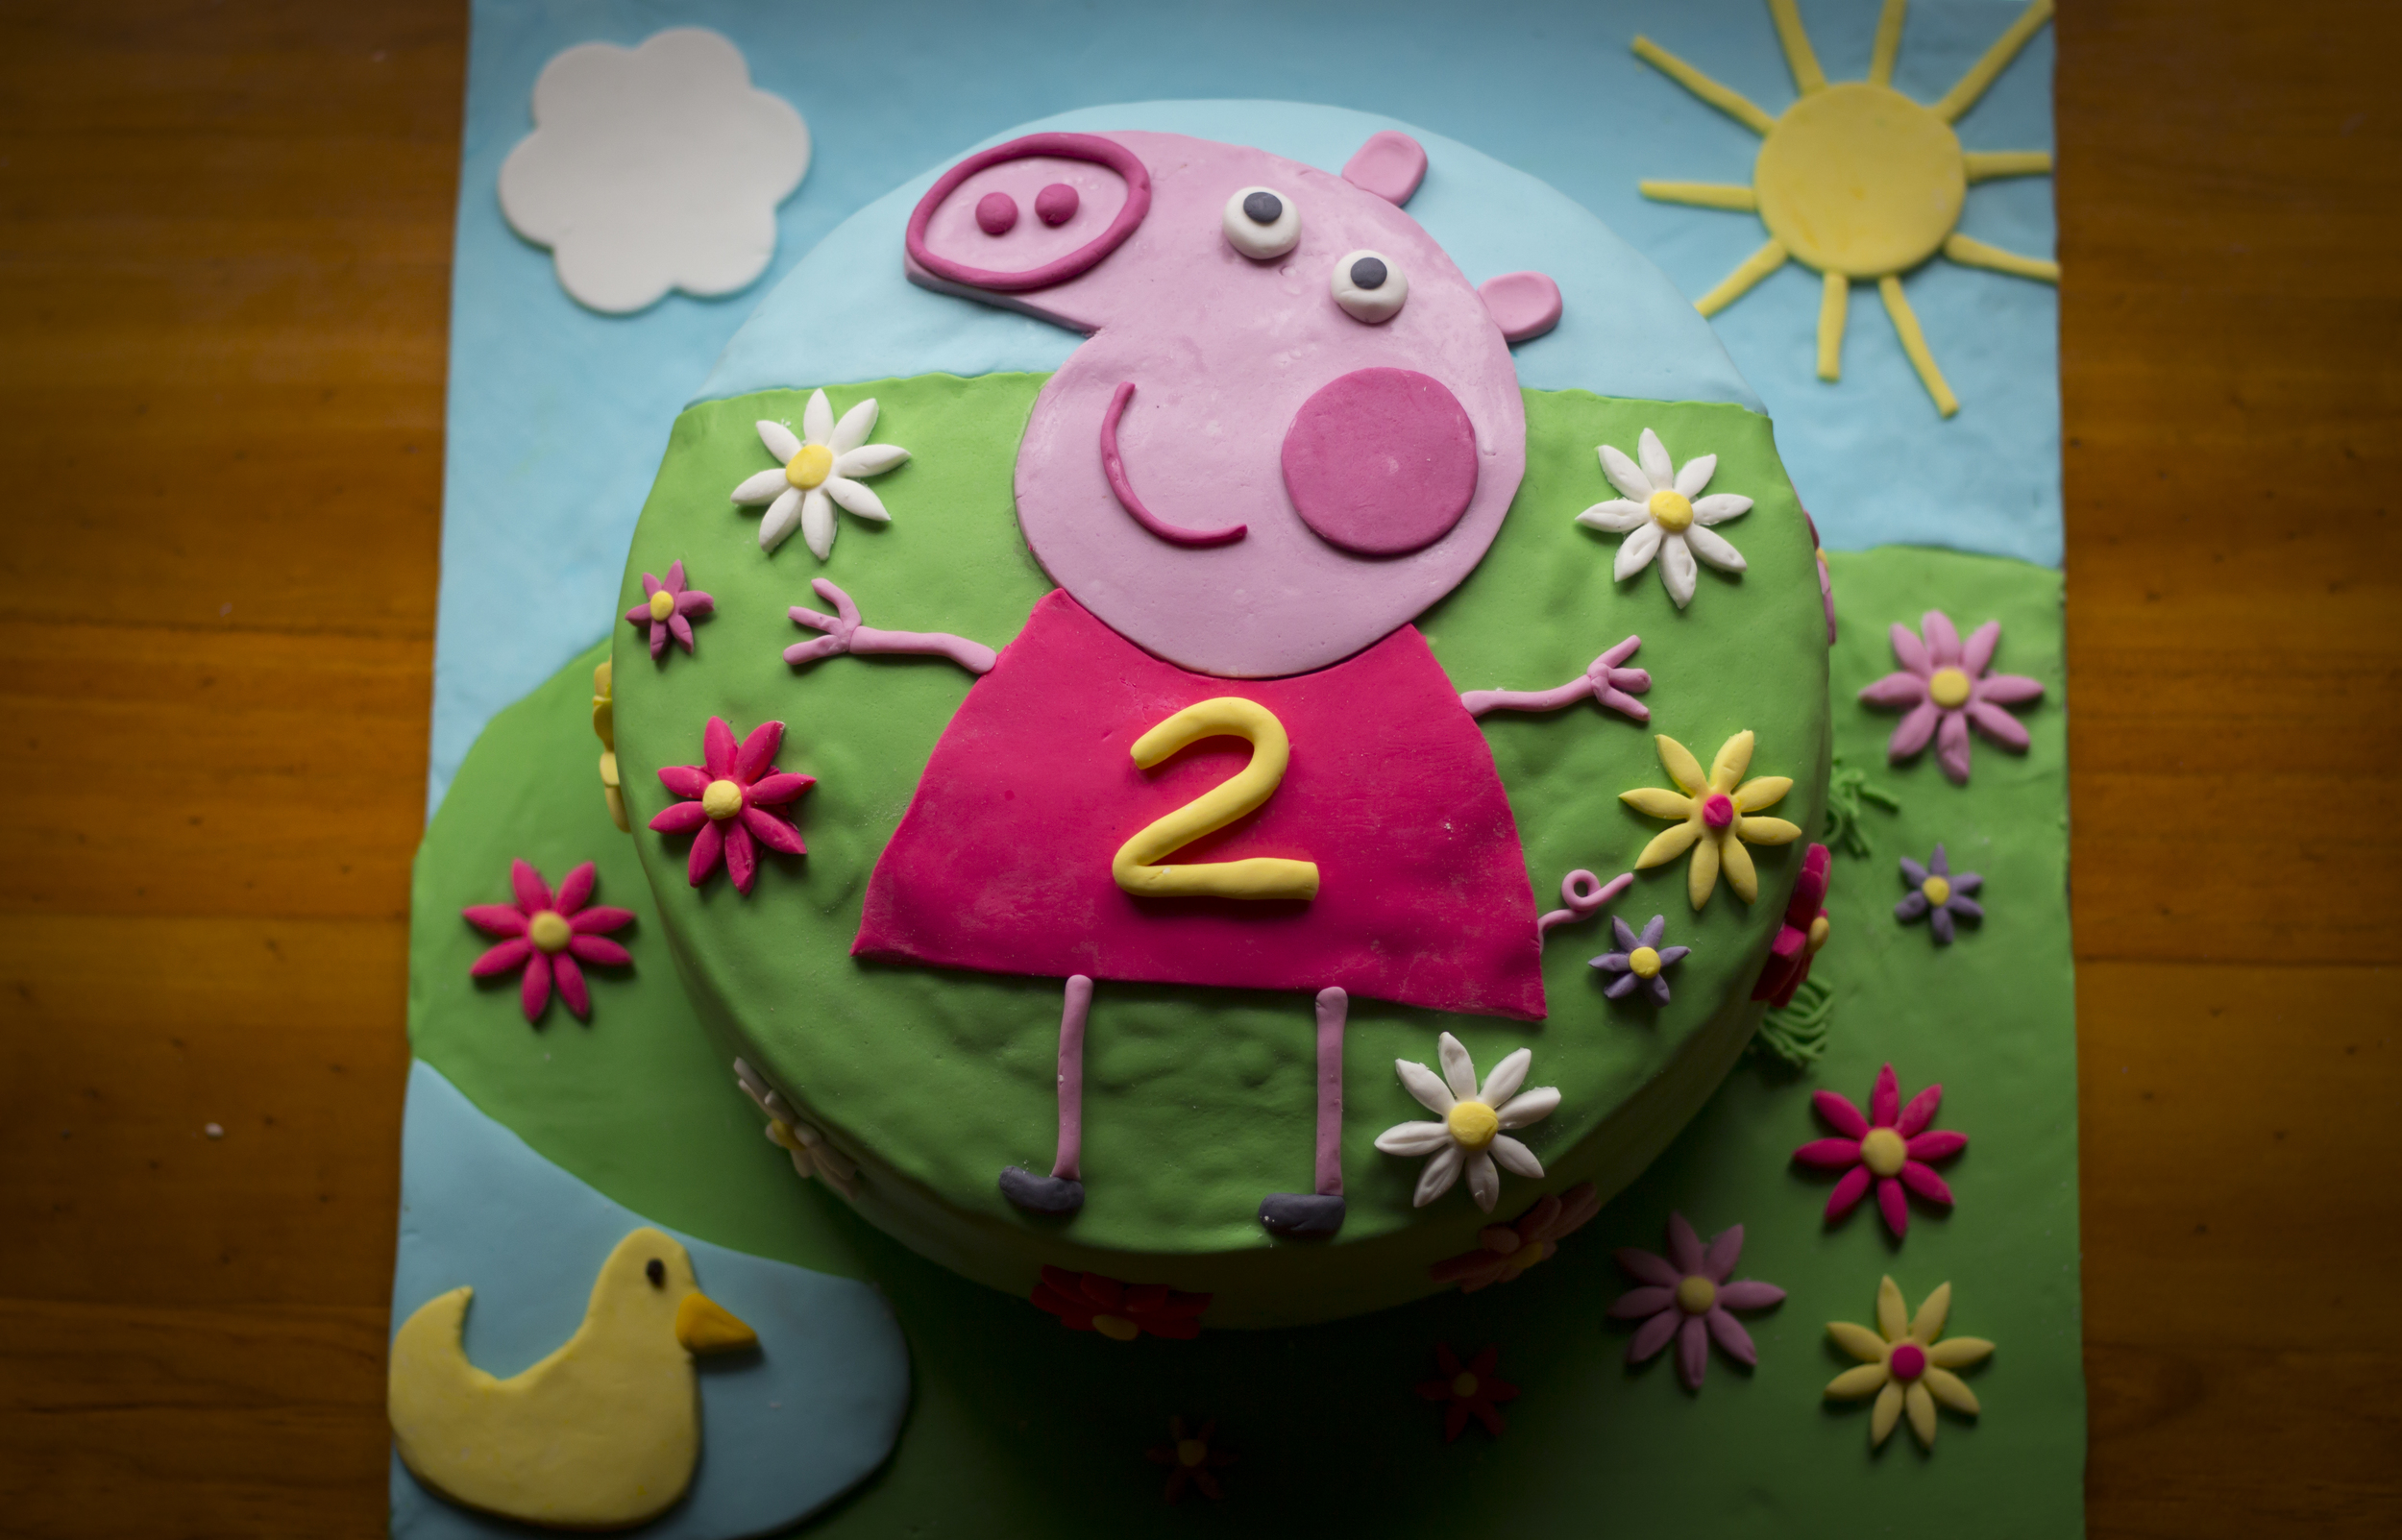 Tammy's 2nd birthday cake whipped up by the very talented Natasha Brunton from  Precious Foods ...oh tasted delish too!